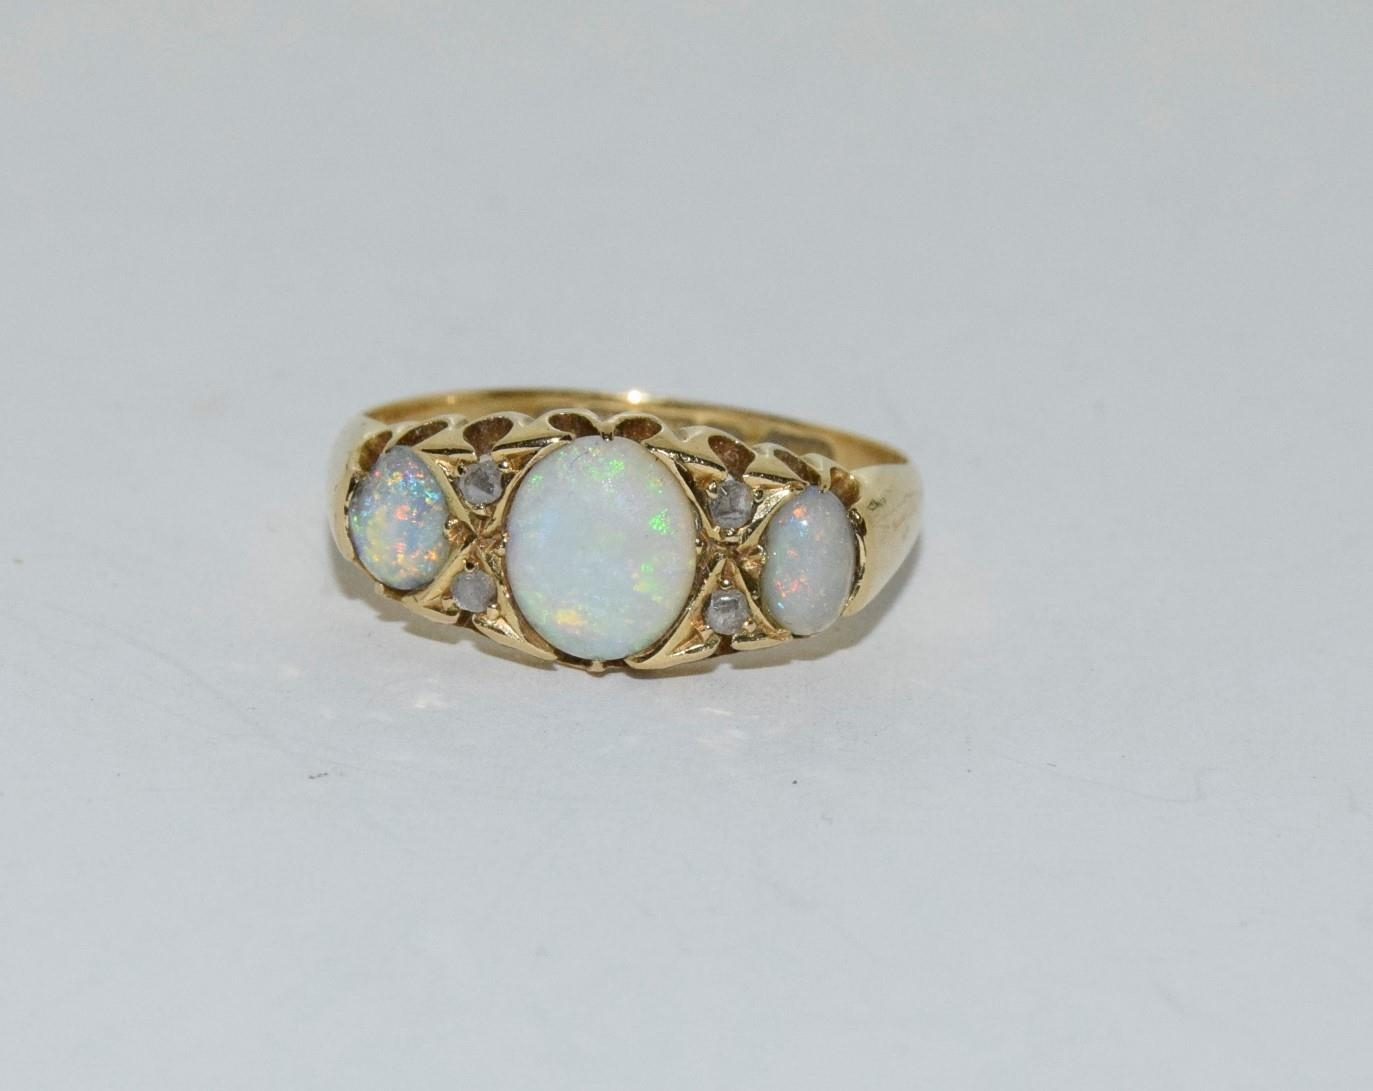 Antique 18ct gold opal/diamond boxed ring, Size P